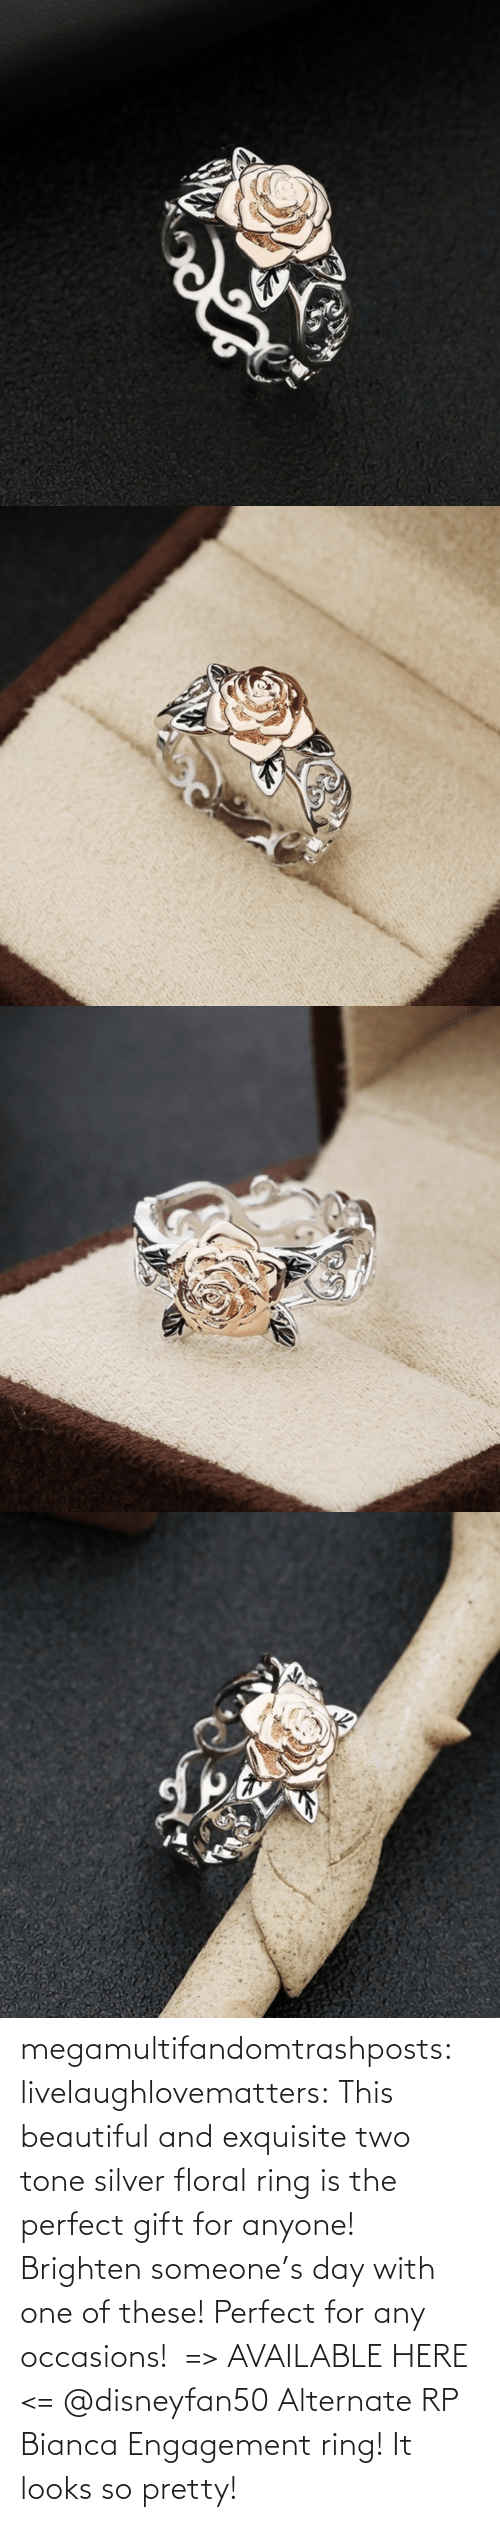 Engagement: megamultifandomtrashposts:  livelaughlovematters: This beautiful and exquisite two tone silver floral ring is the perfect gift for anyone! Brighten someone's day with one of these! Perfect for any occasions!  => AVAILABLE HERE <=    @disneyfan50 Alternate RP Bianca Engagement ring! It looks so pretty!